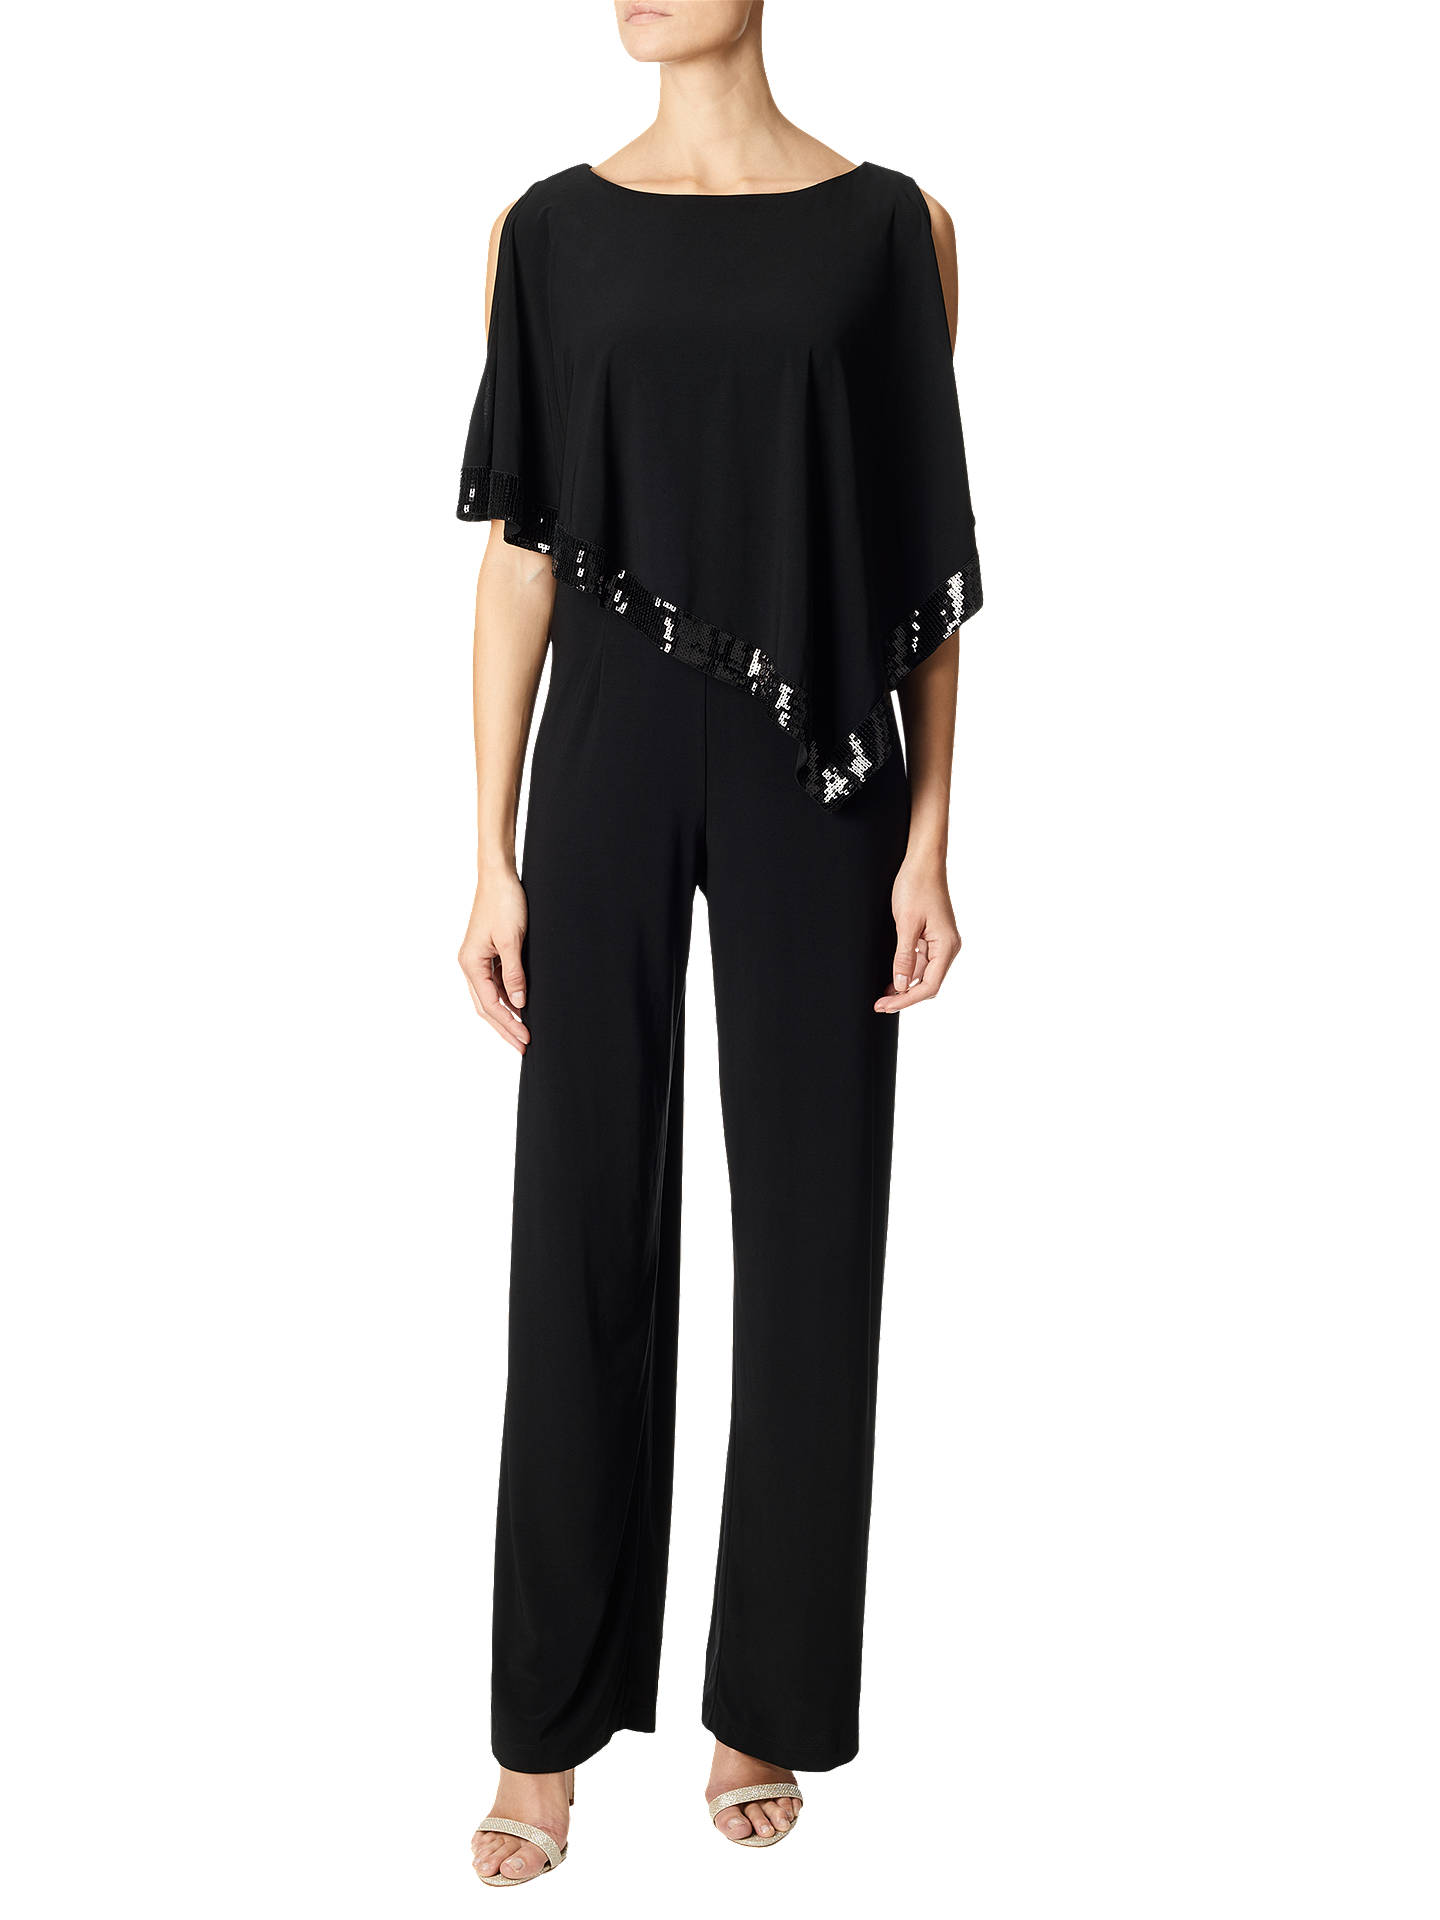 BuyAdrianna Papell Matte Jersey Capelet Sequin Trim Jumpsuit, Black, 8 Online at johnlewis.com